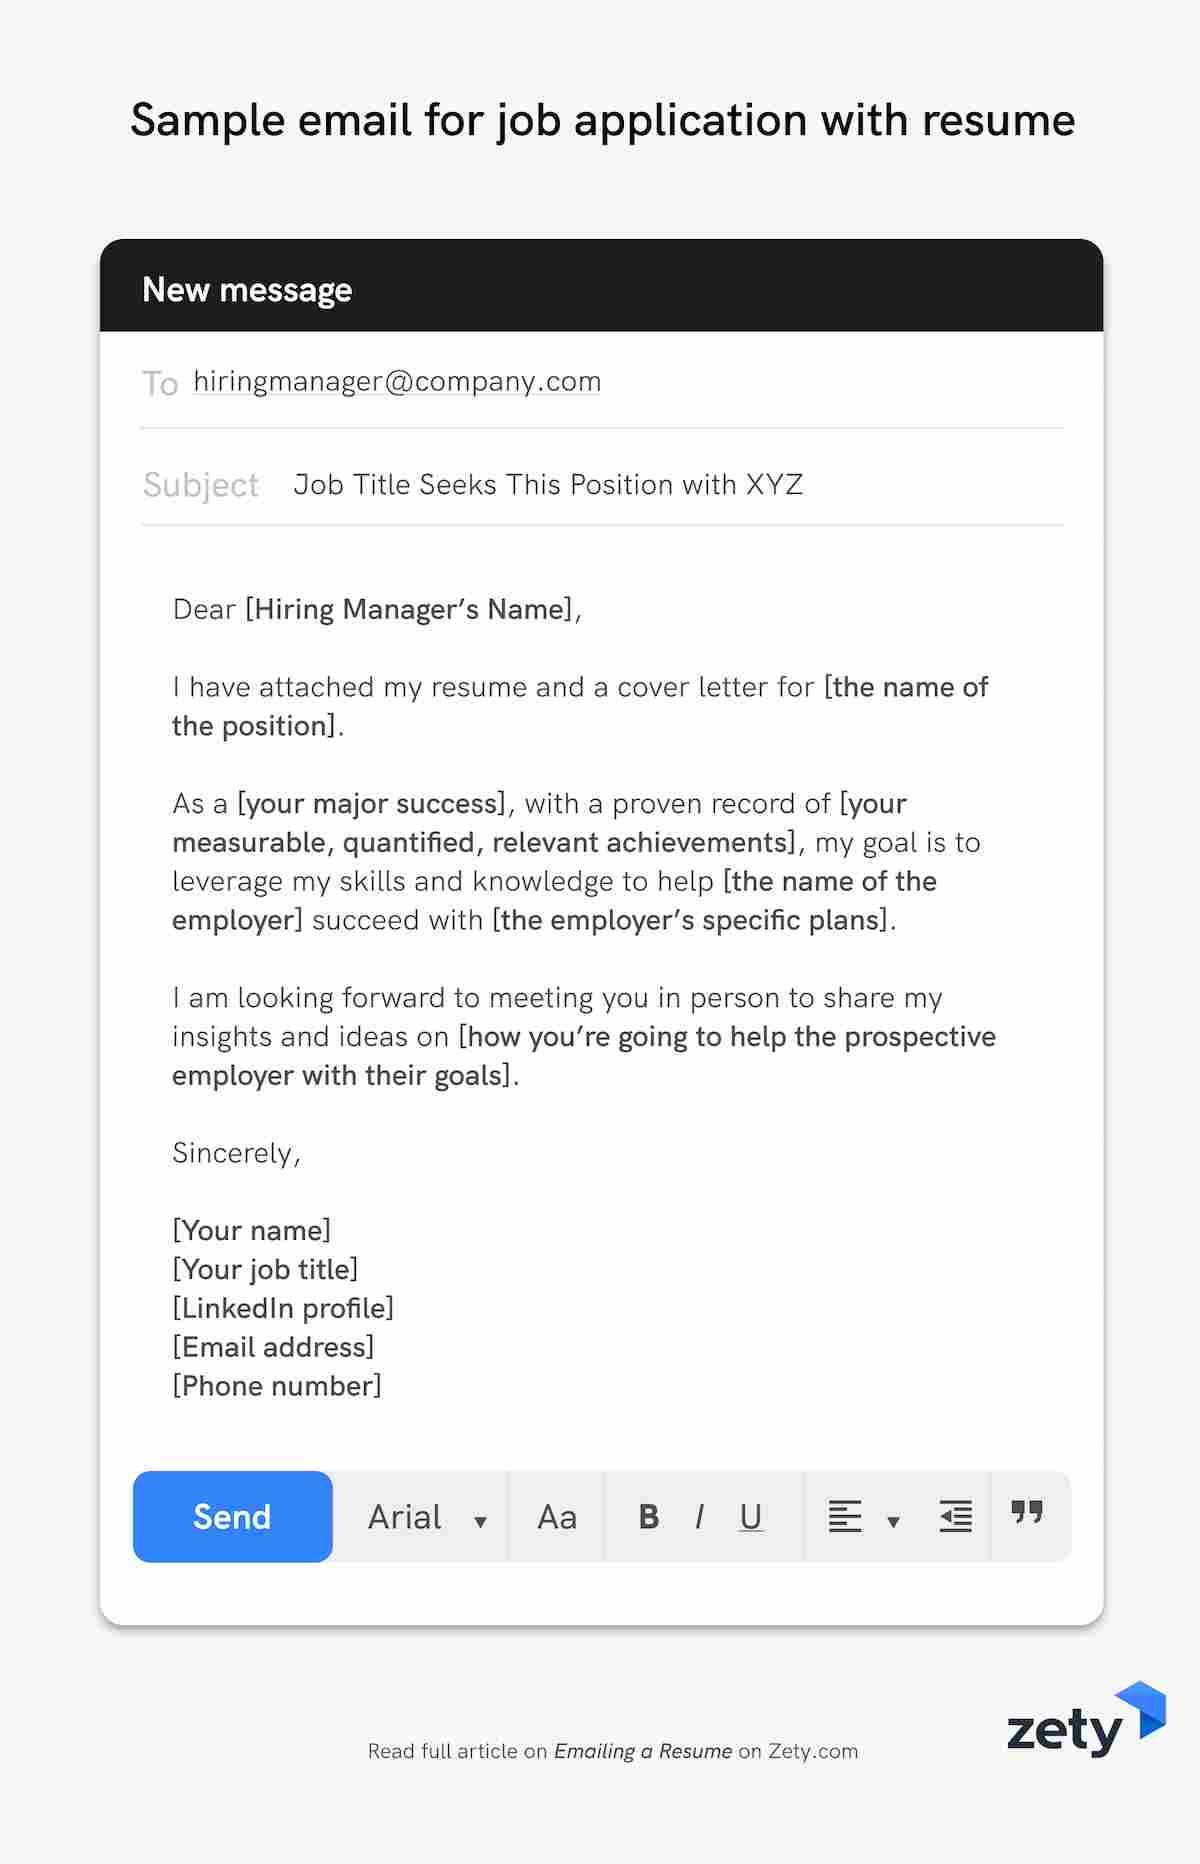 emailing resume job application email samples body for sending example sample with Resume Email Body For Sending Resume Example